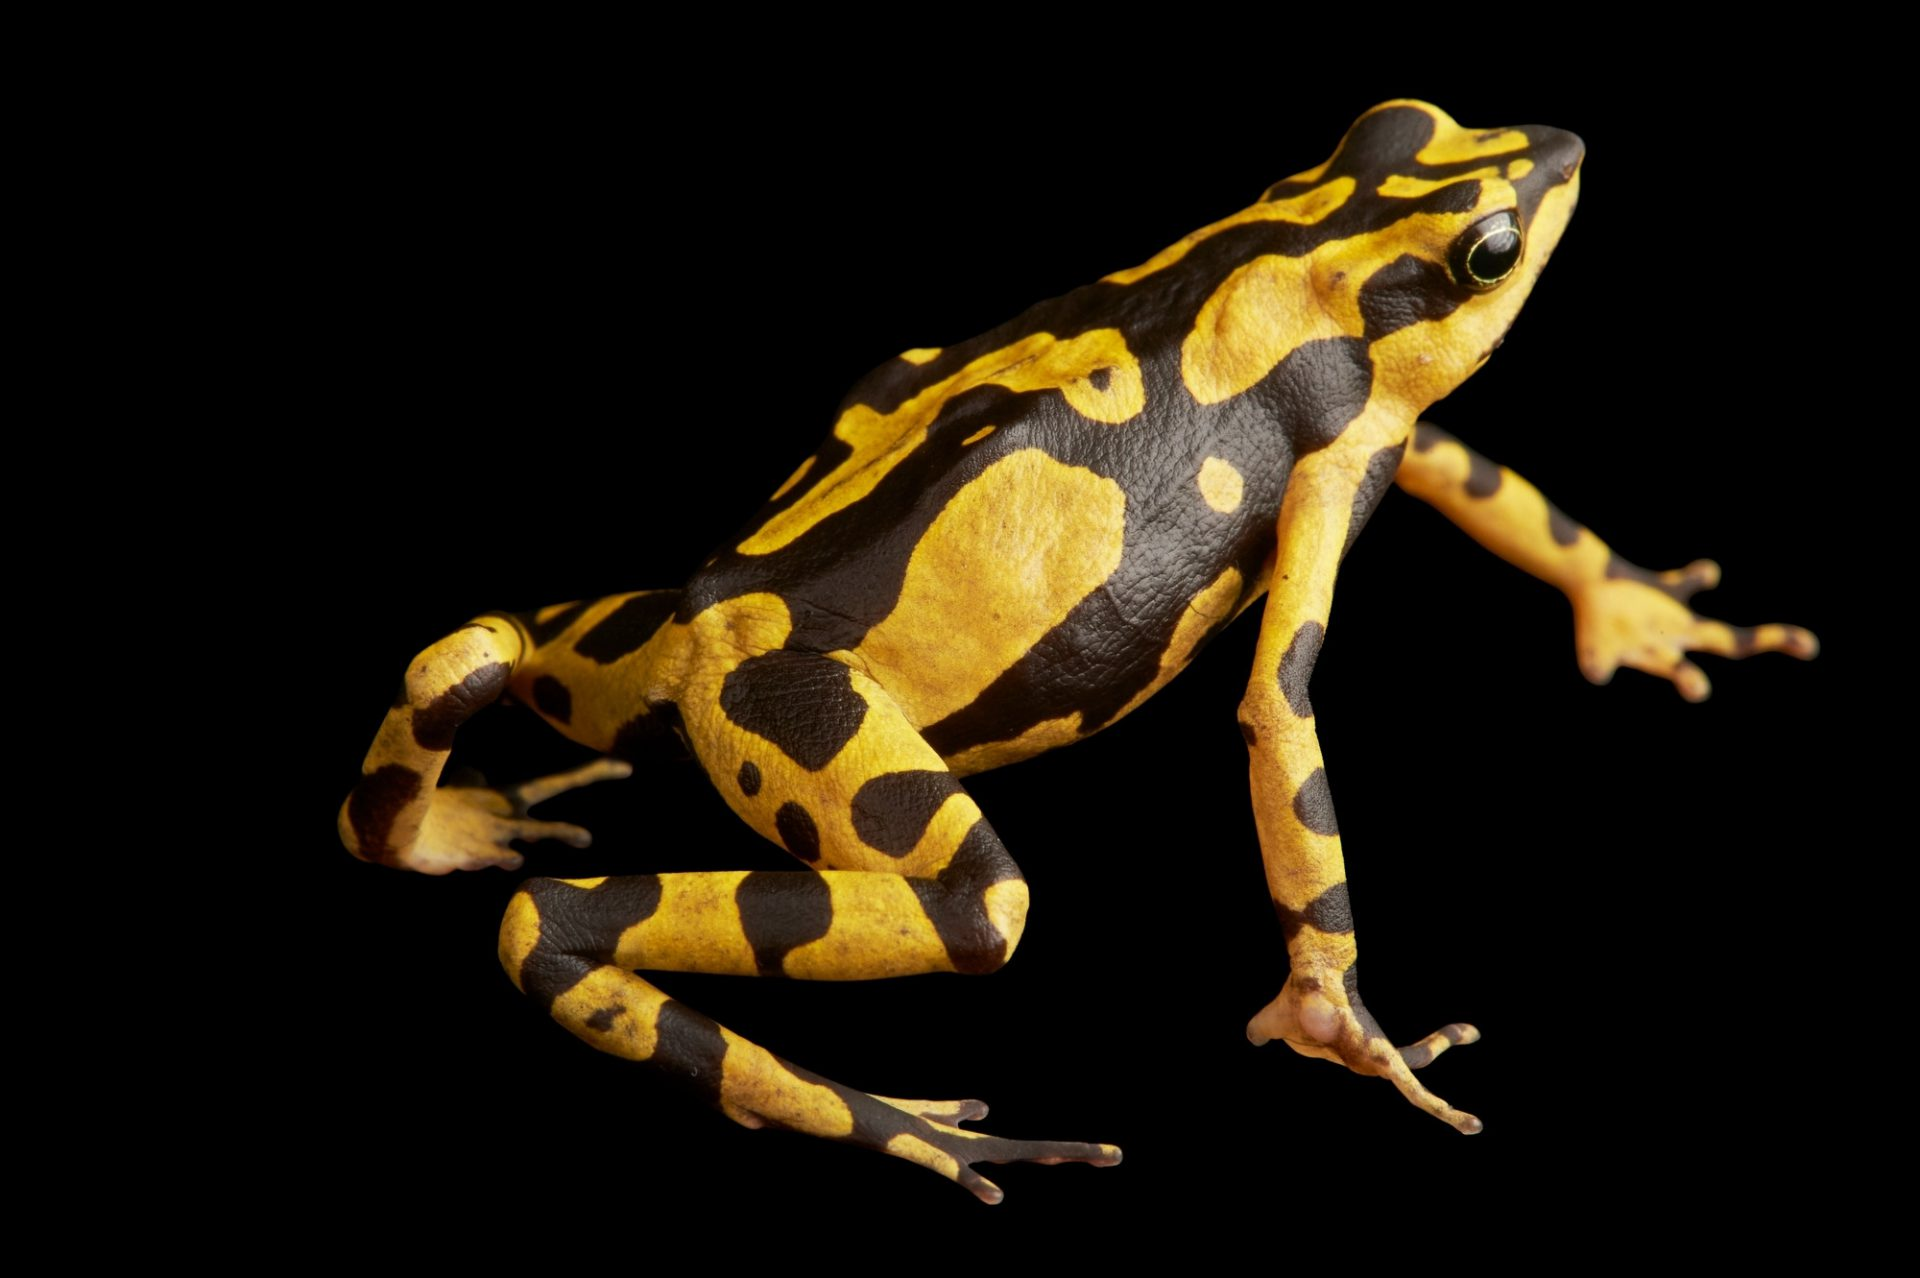 Picture of an undescribed harlequin frog (Atelopus species) from Suriname.